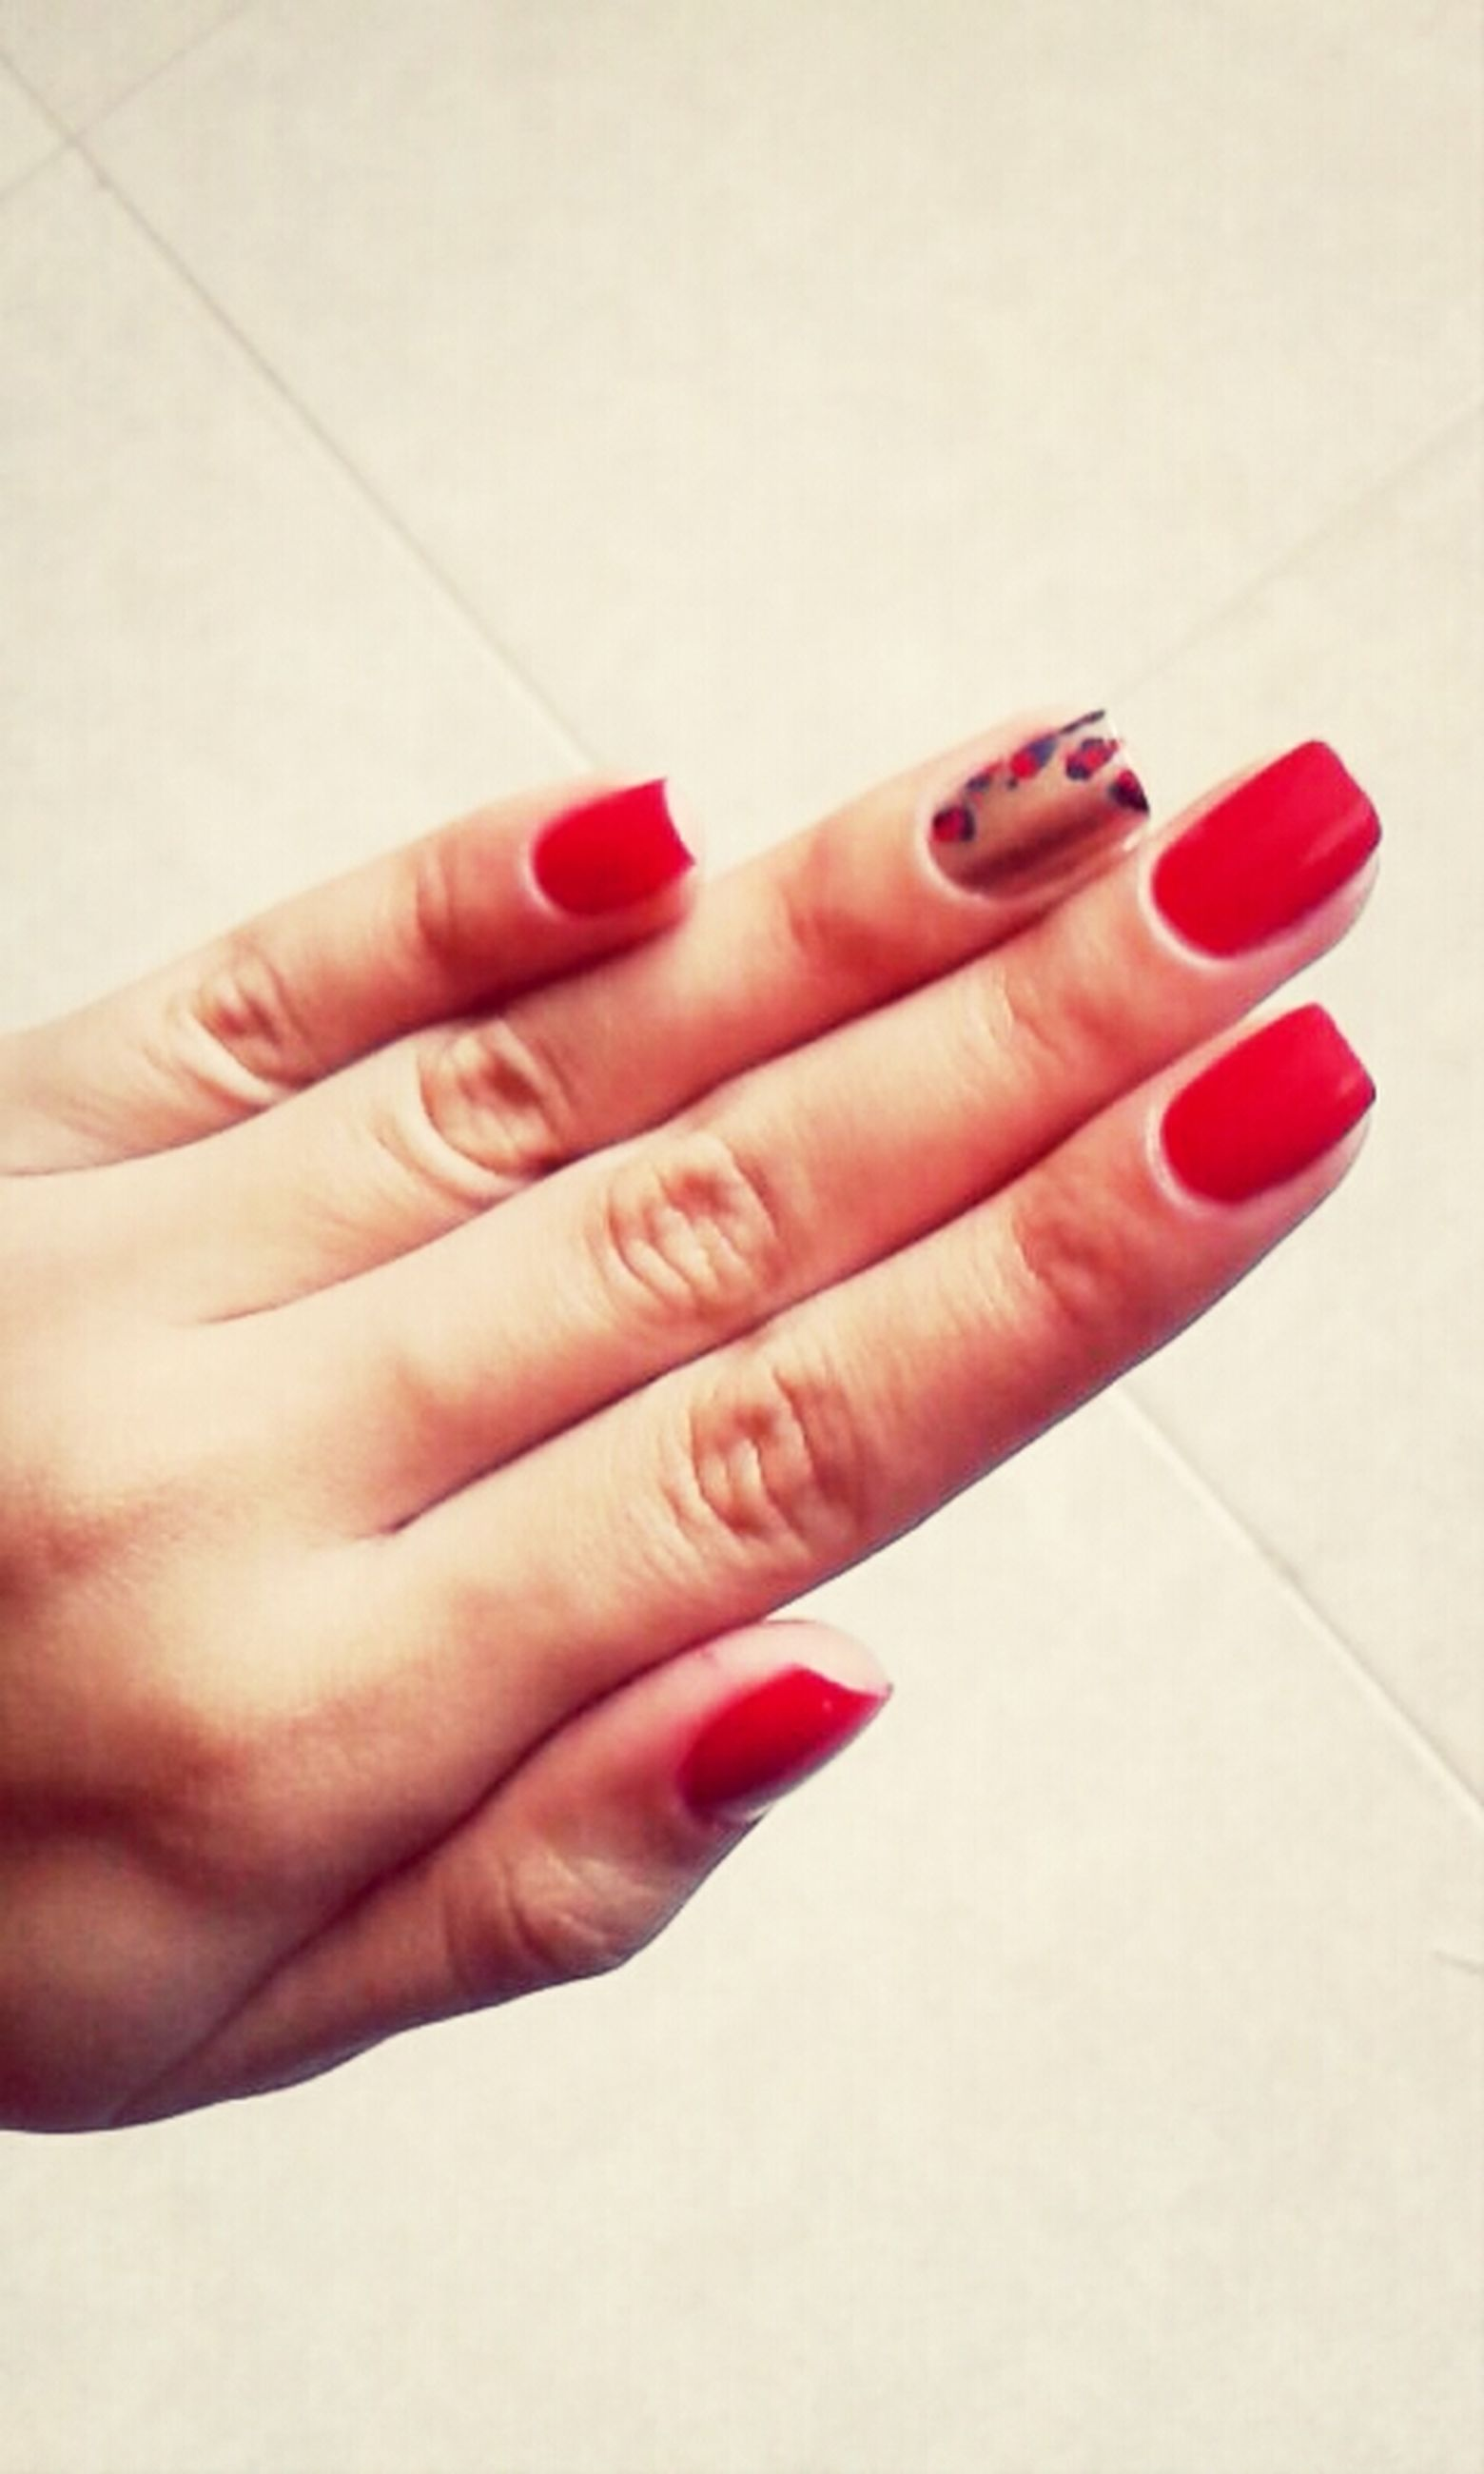 person, part of, indoors, human finger, cropped, holding, red, close-up, nail polish, white background, lifestyles, studio shot, unrecognizable person, high angle view, personal perspective, red nail polish